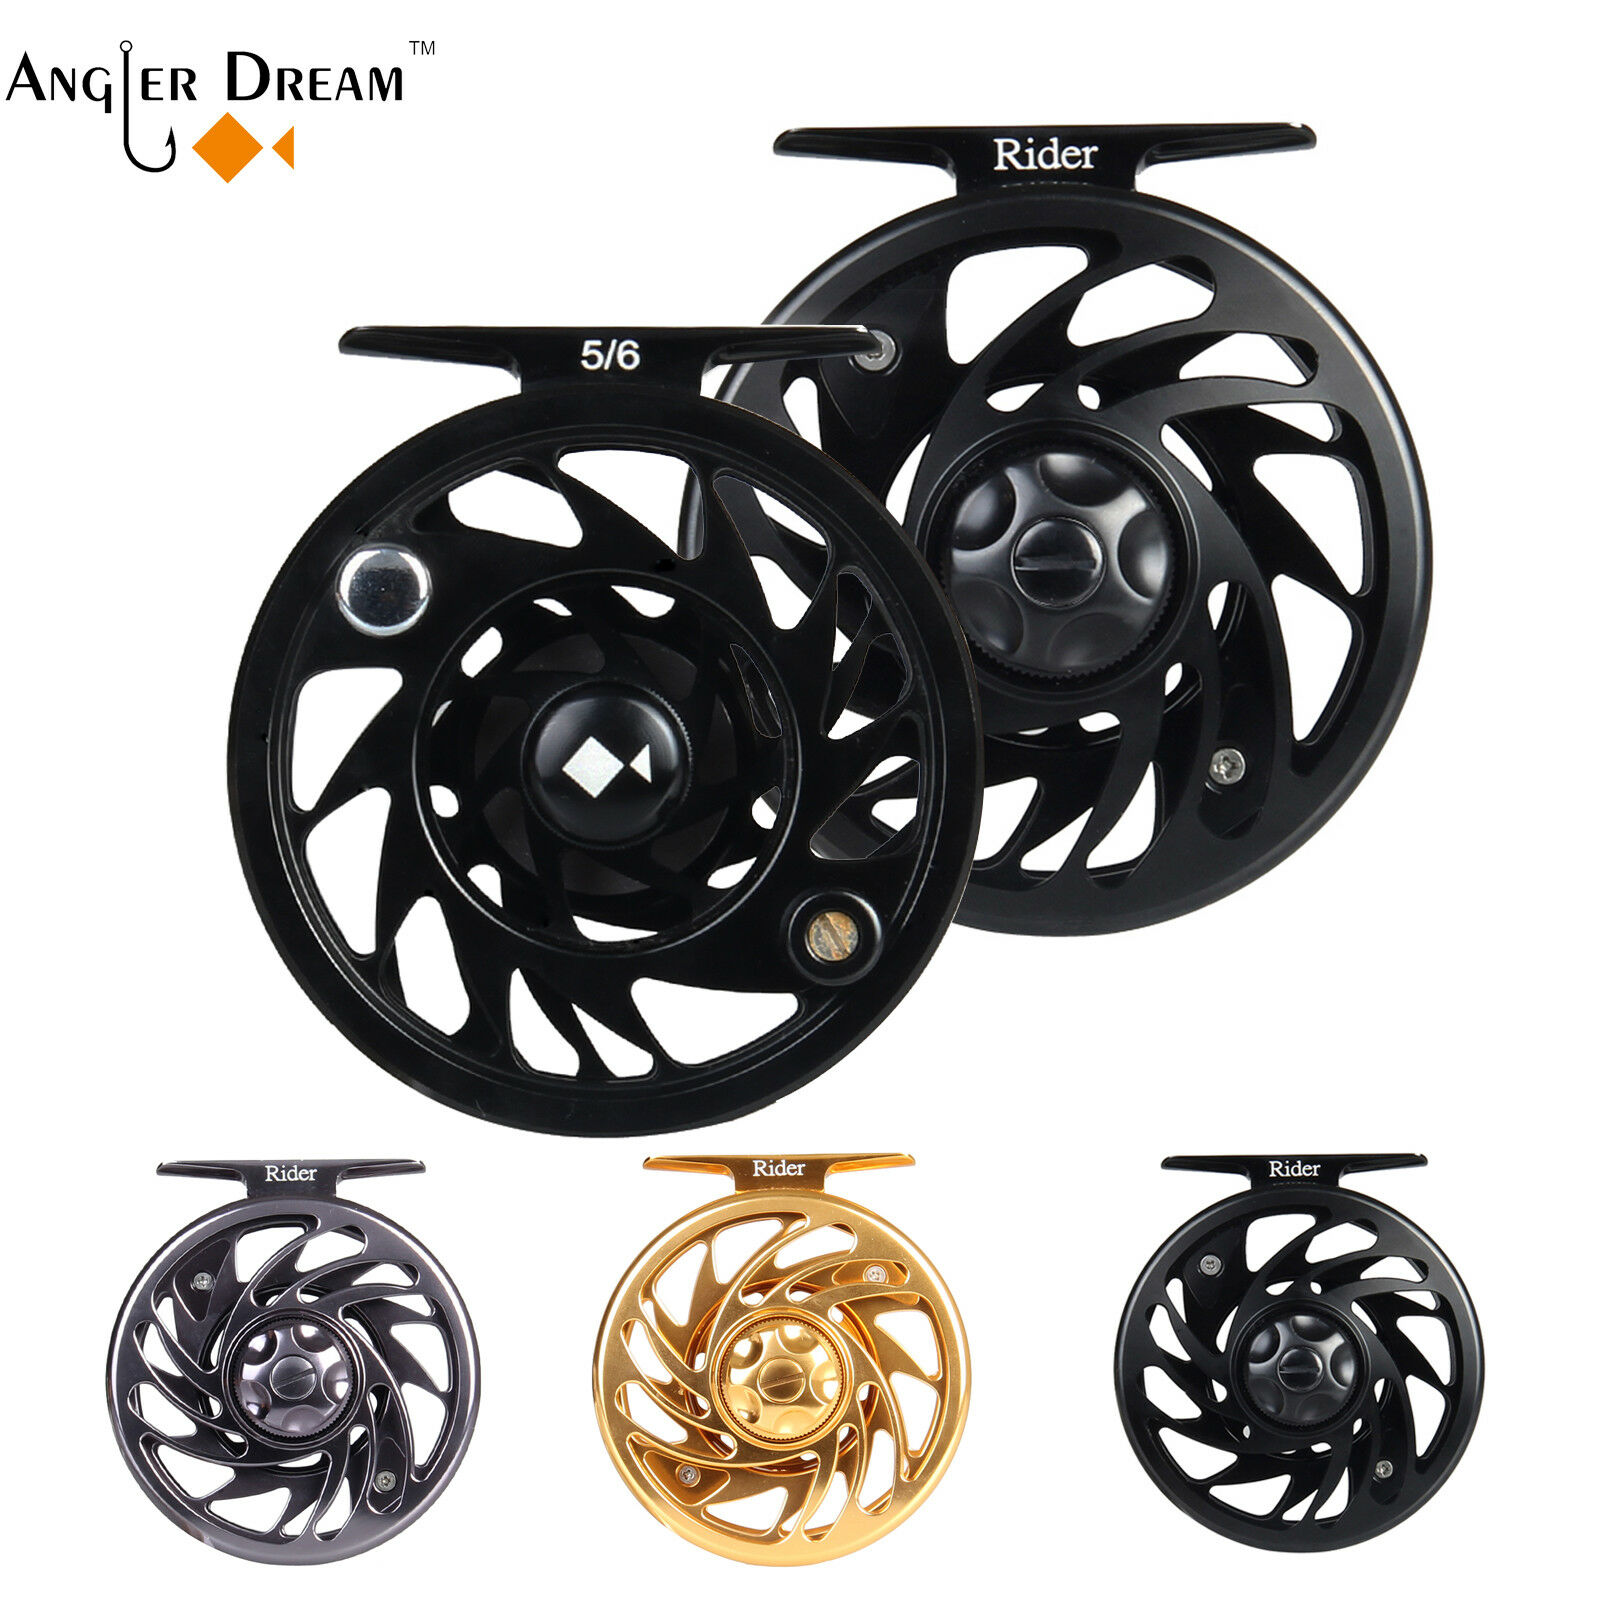 FLY fishing reel 3/4 5/6 7/8 9/10WT CMC lavorato Reel Fly Reel lavorato a53839